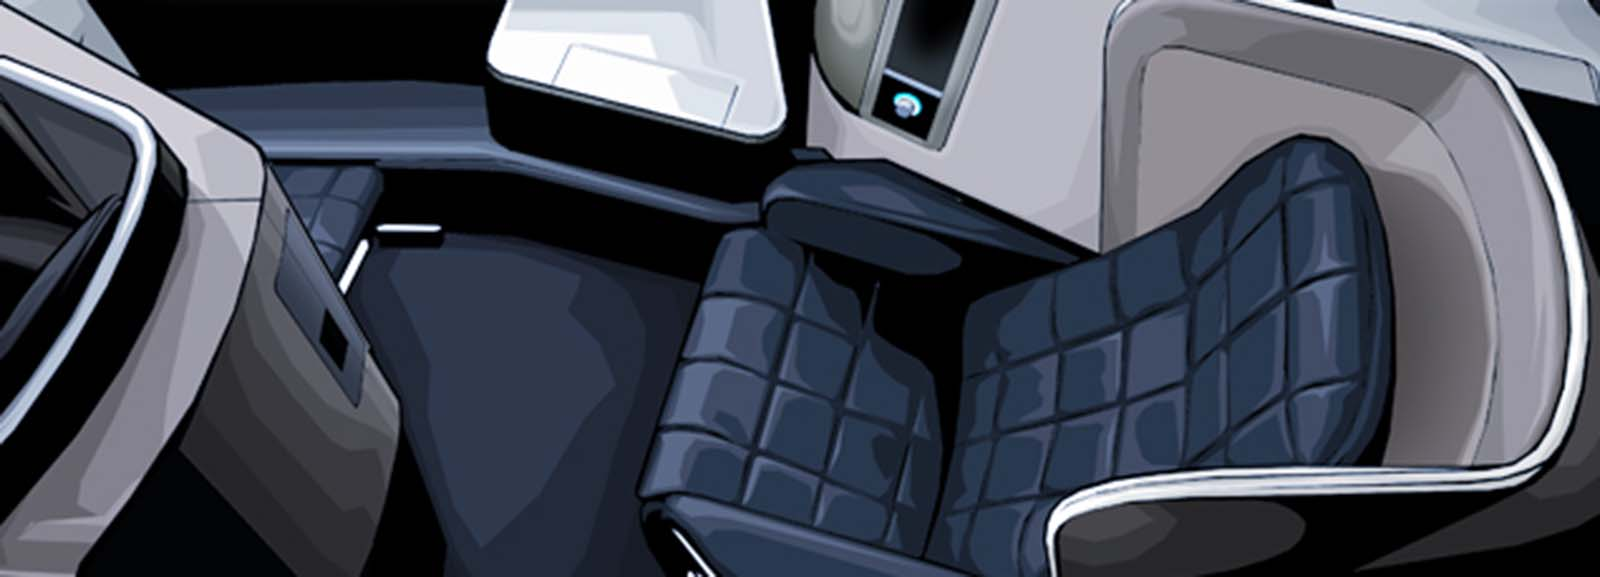 square patterned seat in first class